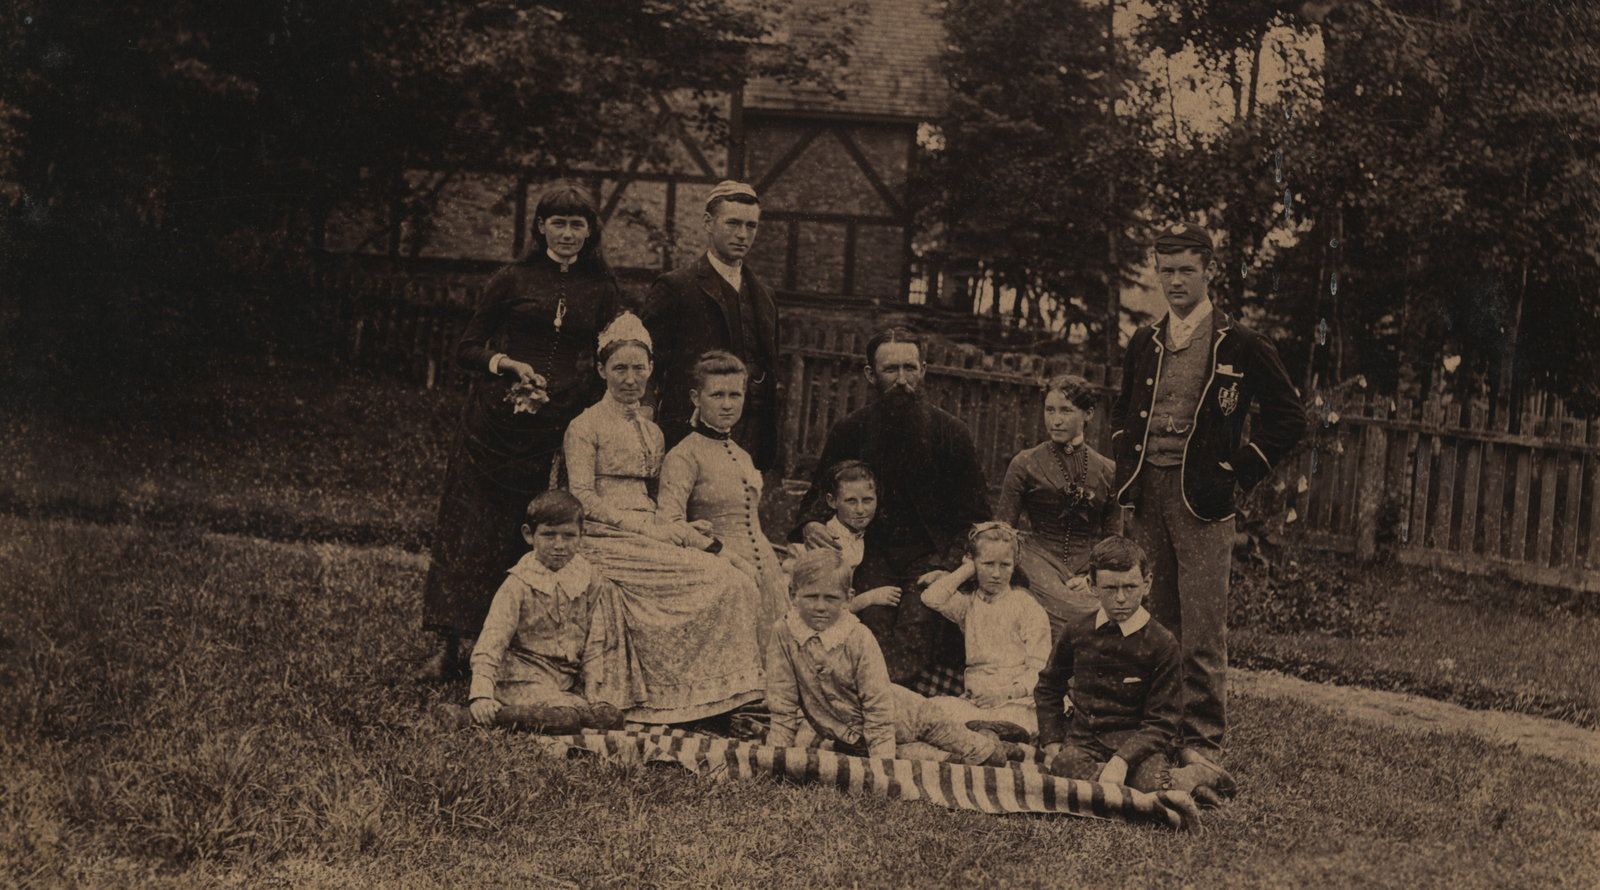 The Reverend E. F. Wilson and his family at Shingwauk mission